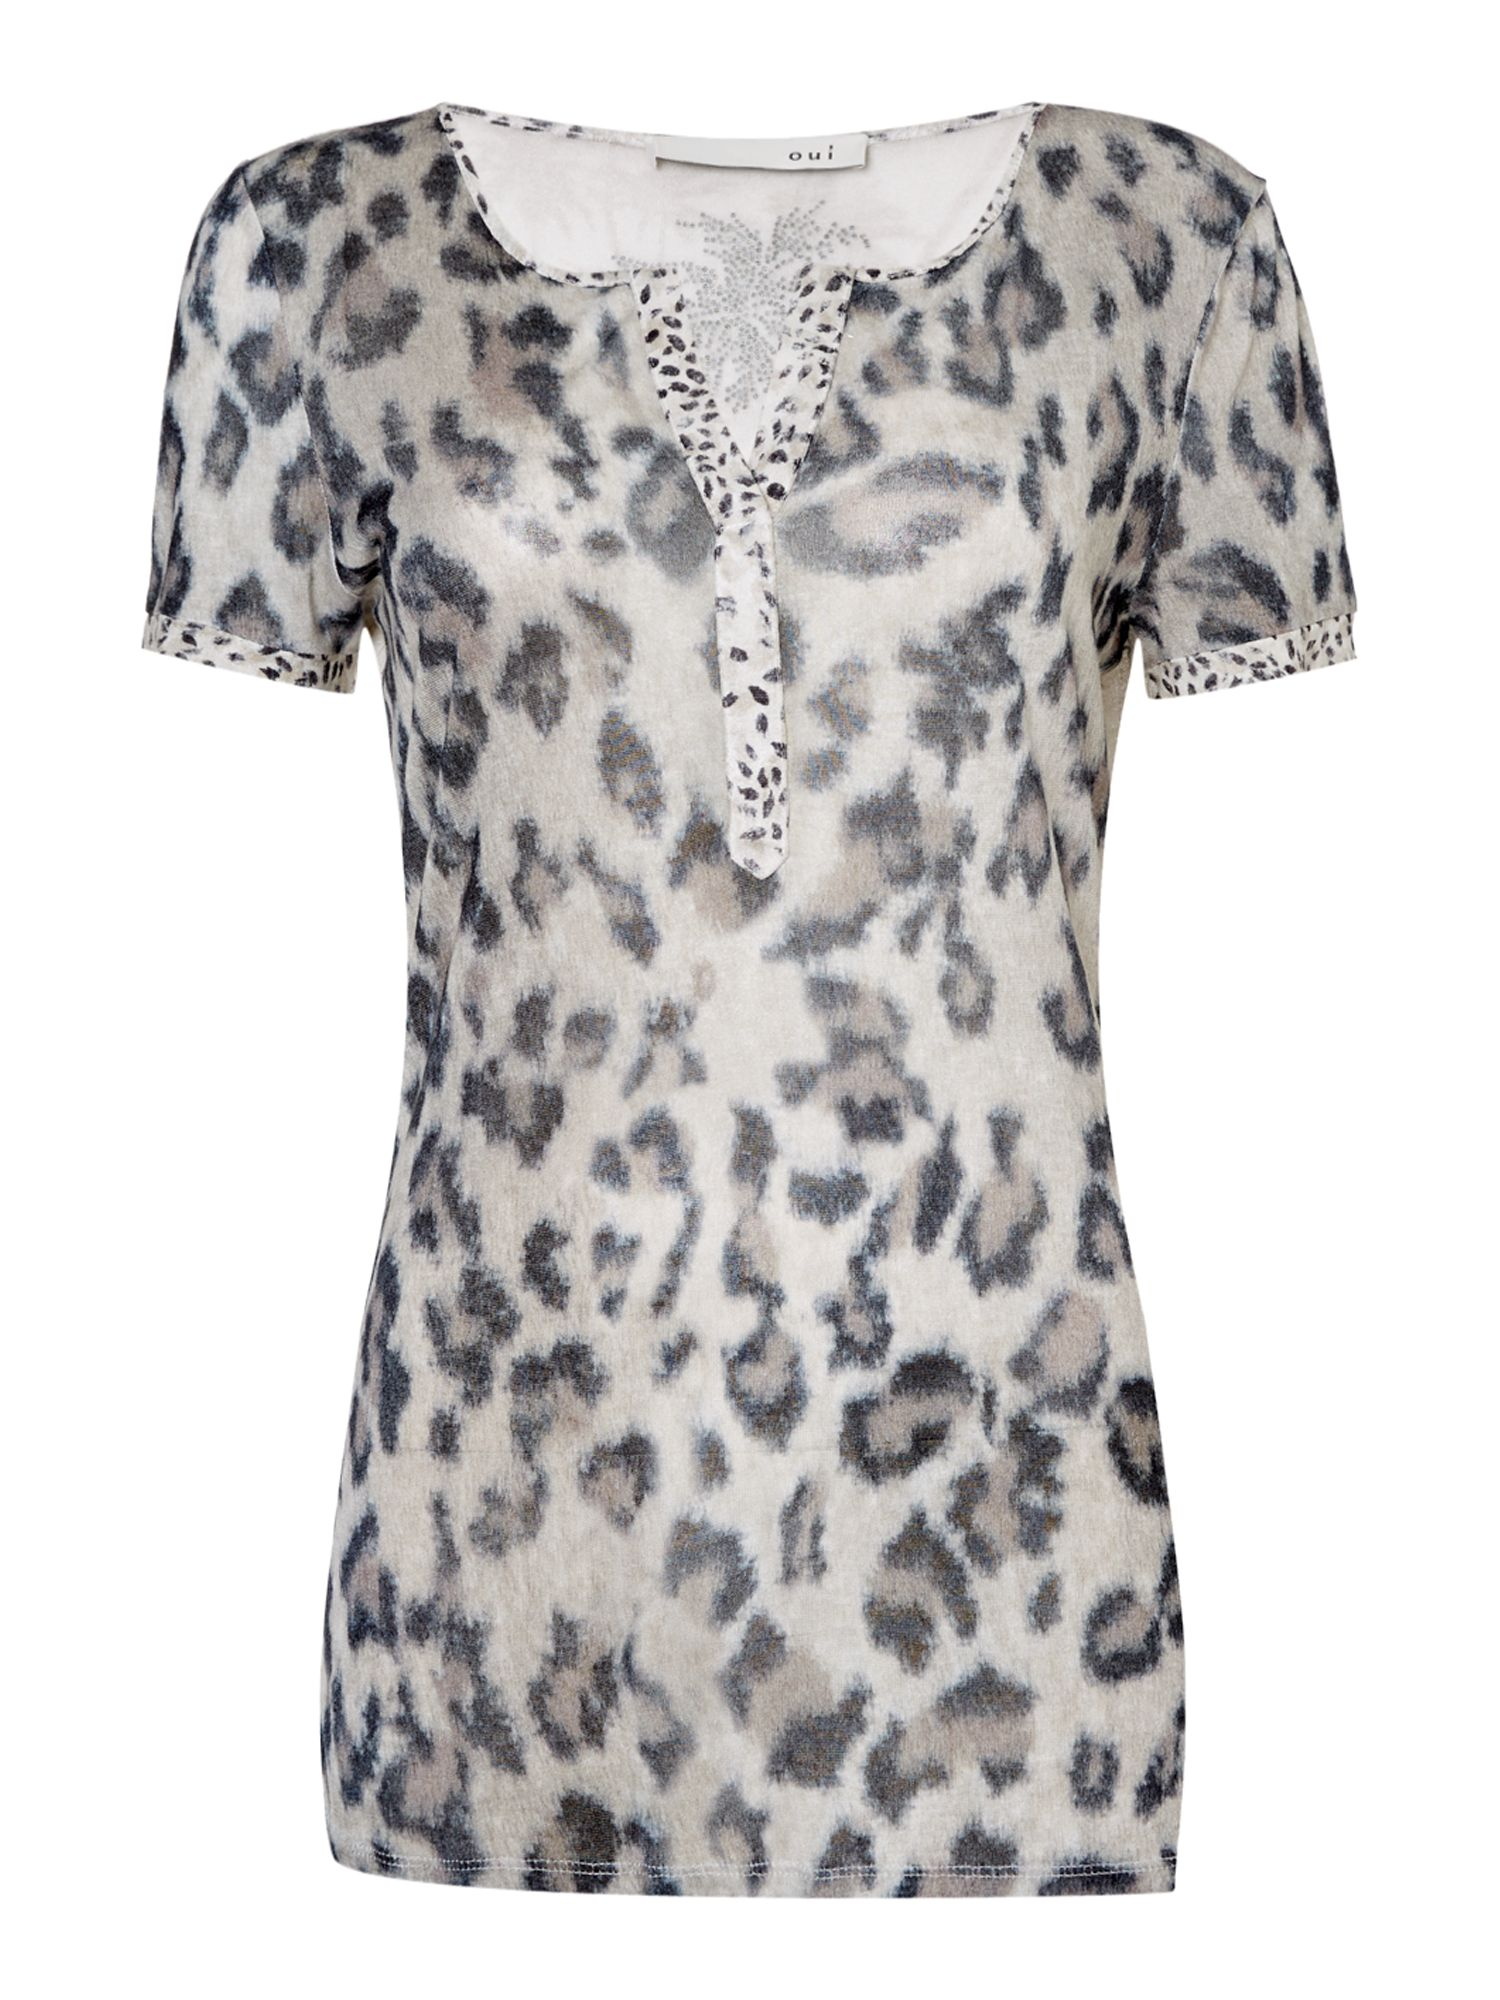 Oui V neck animal print tshirt Camel